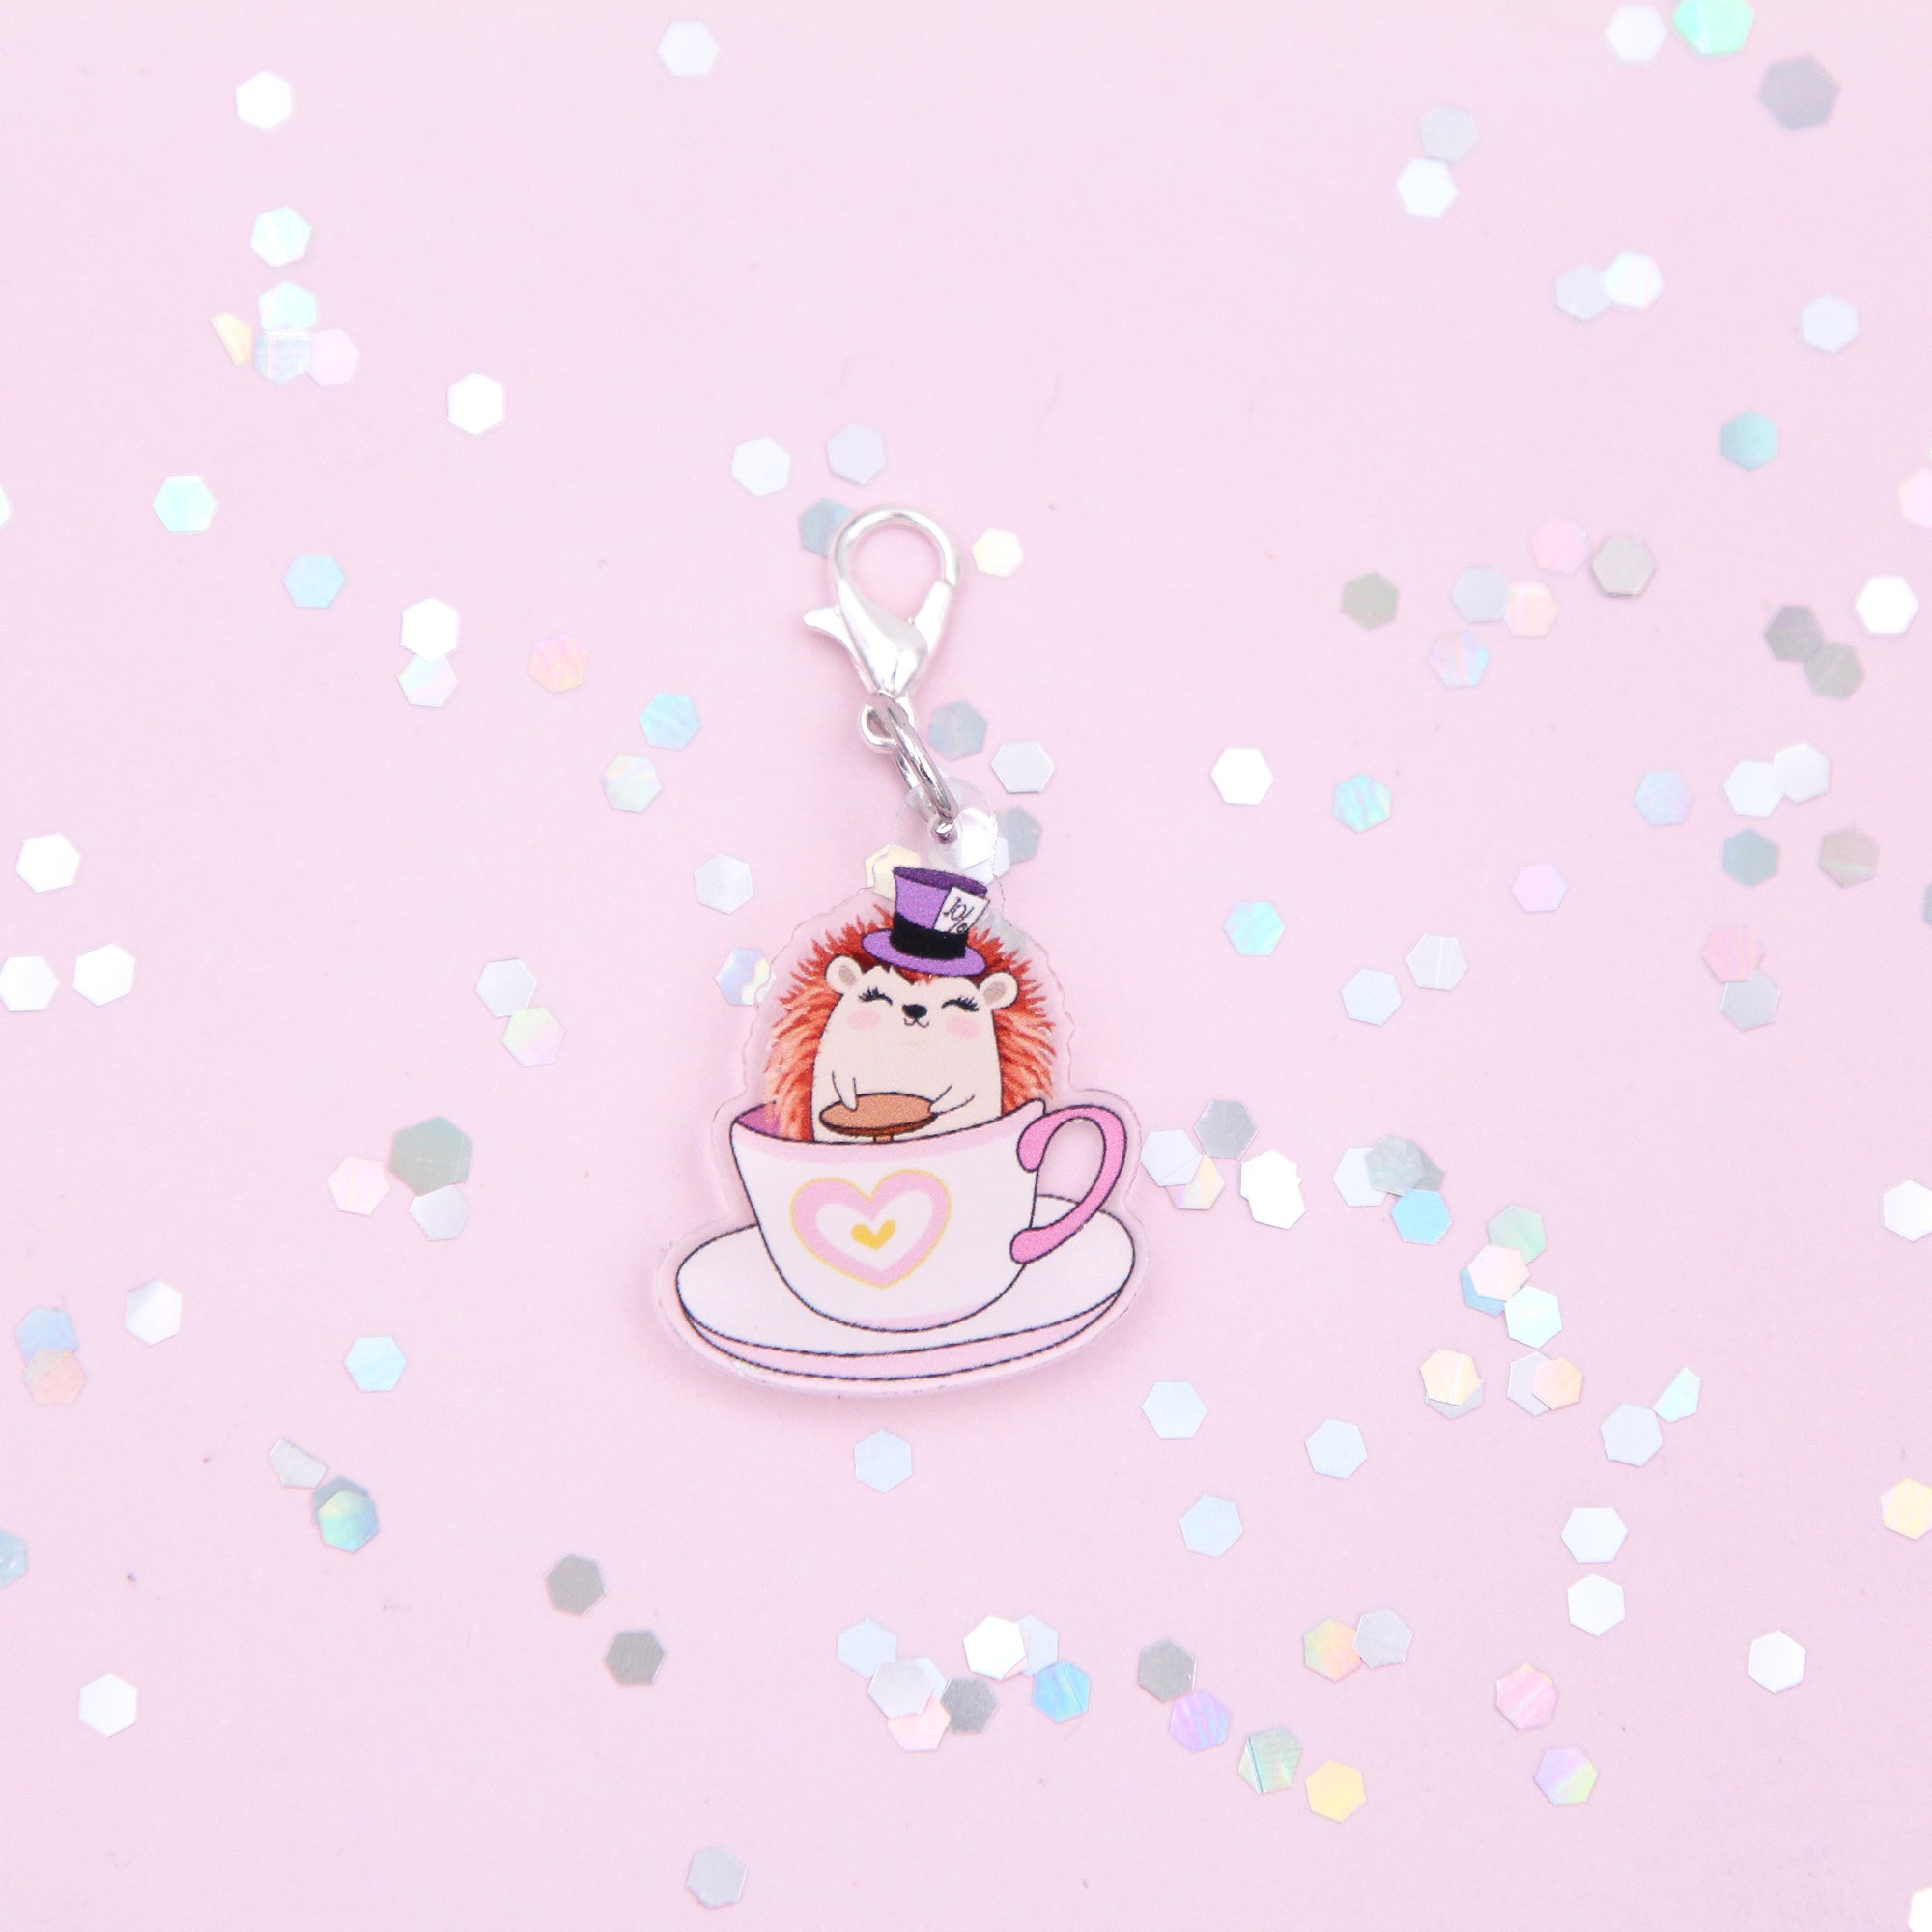 Quill Teacup Ride - Acrylic Charm